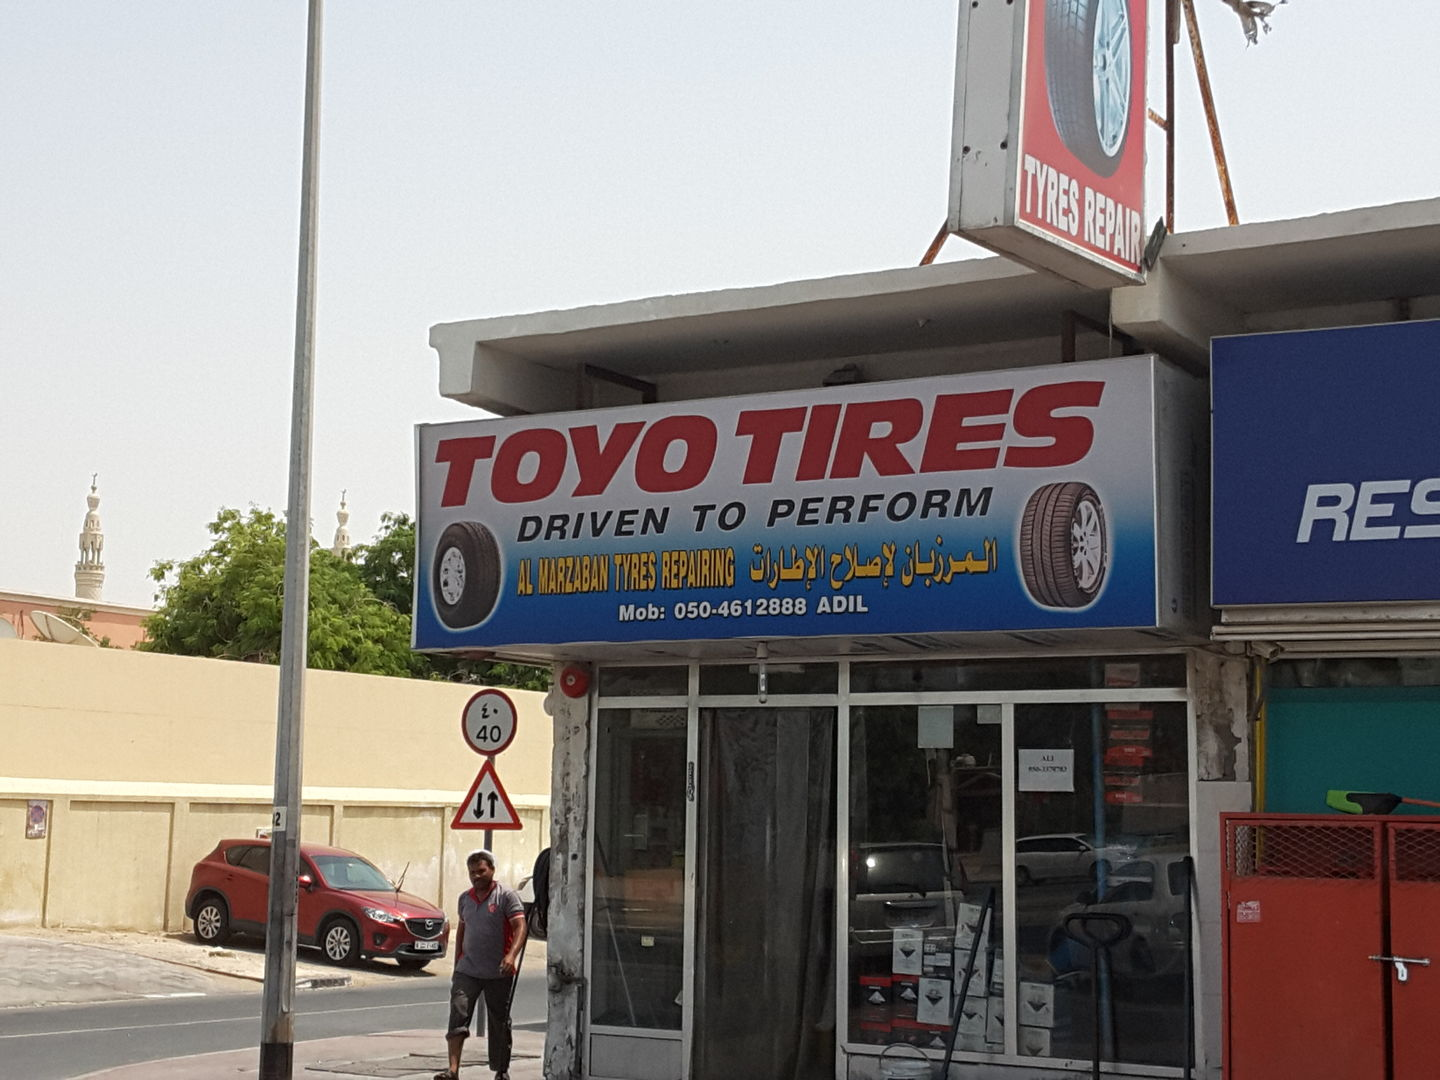 HiDubai-business-al-marzaban-tyres-repairing-transport-vehicle-services-car-assistance-repair-al-quoz-1-dubai-2